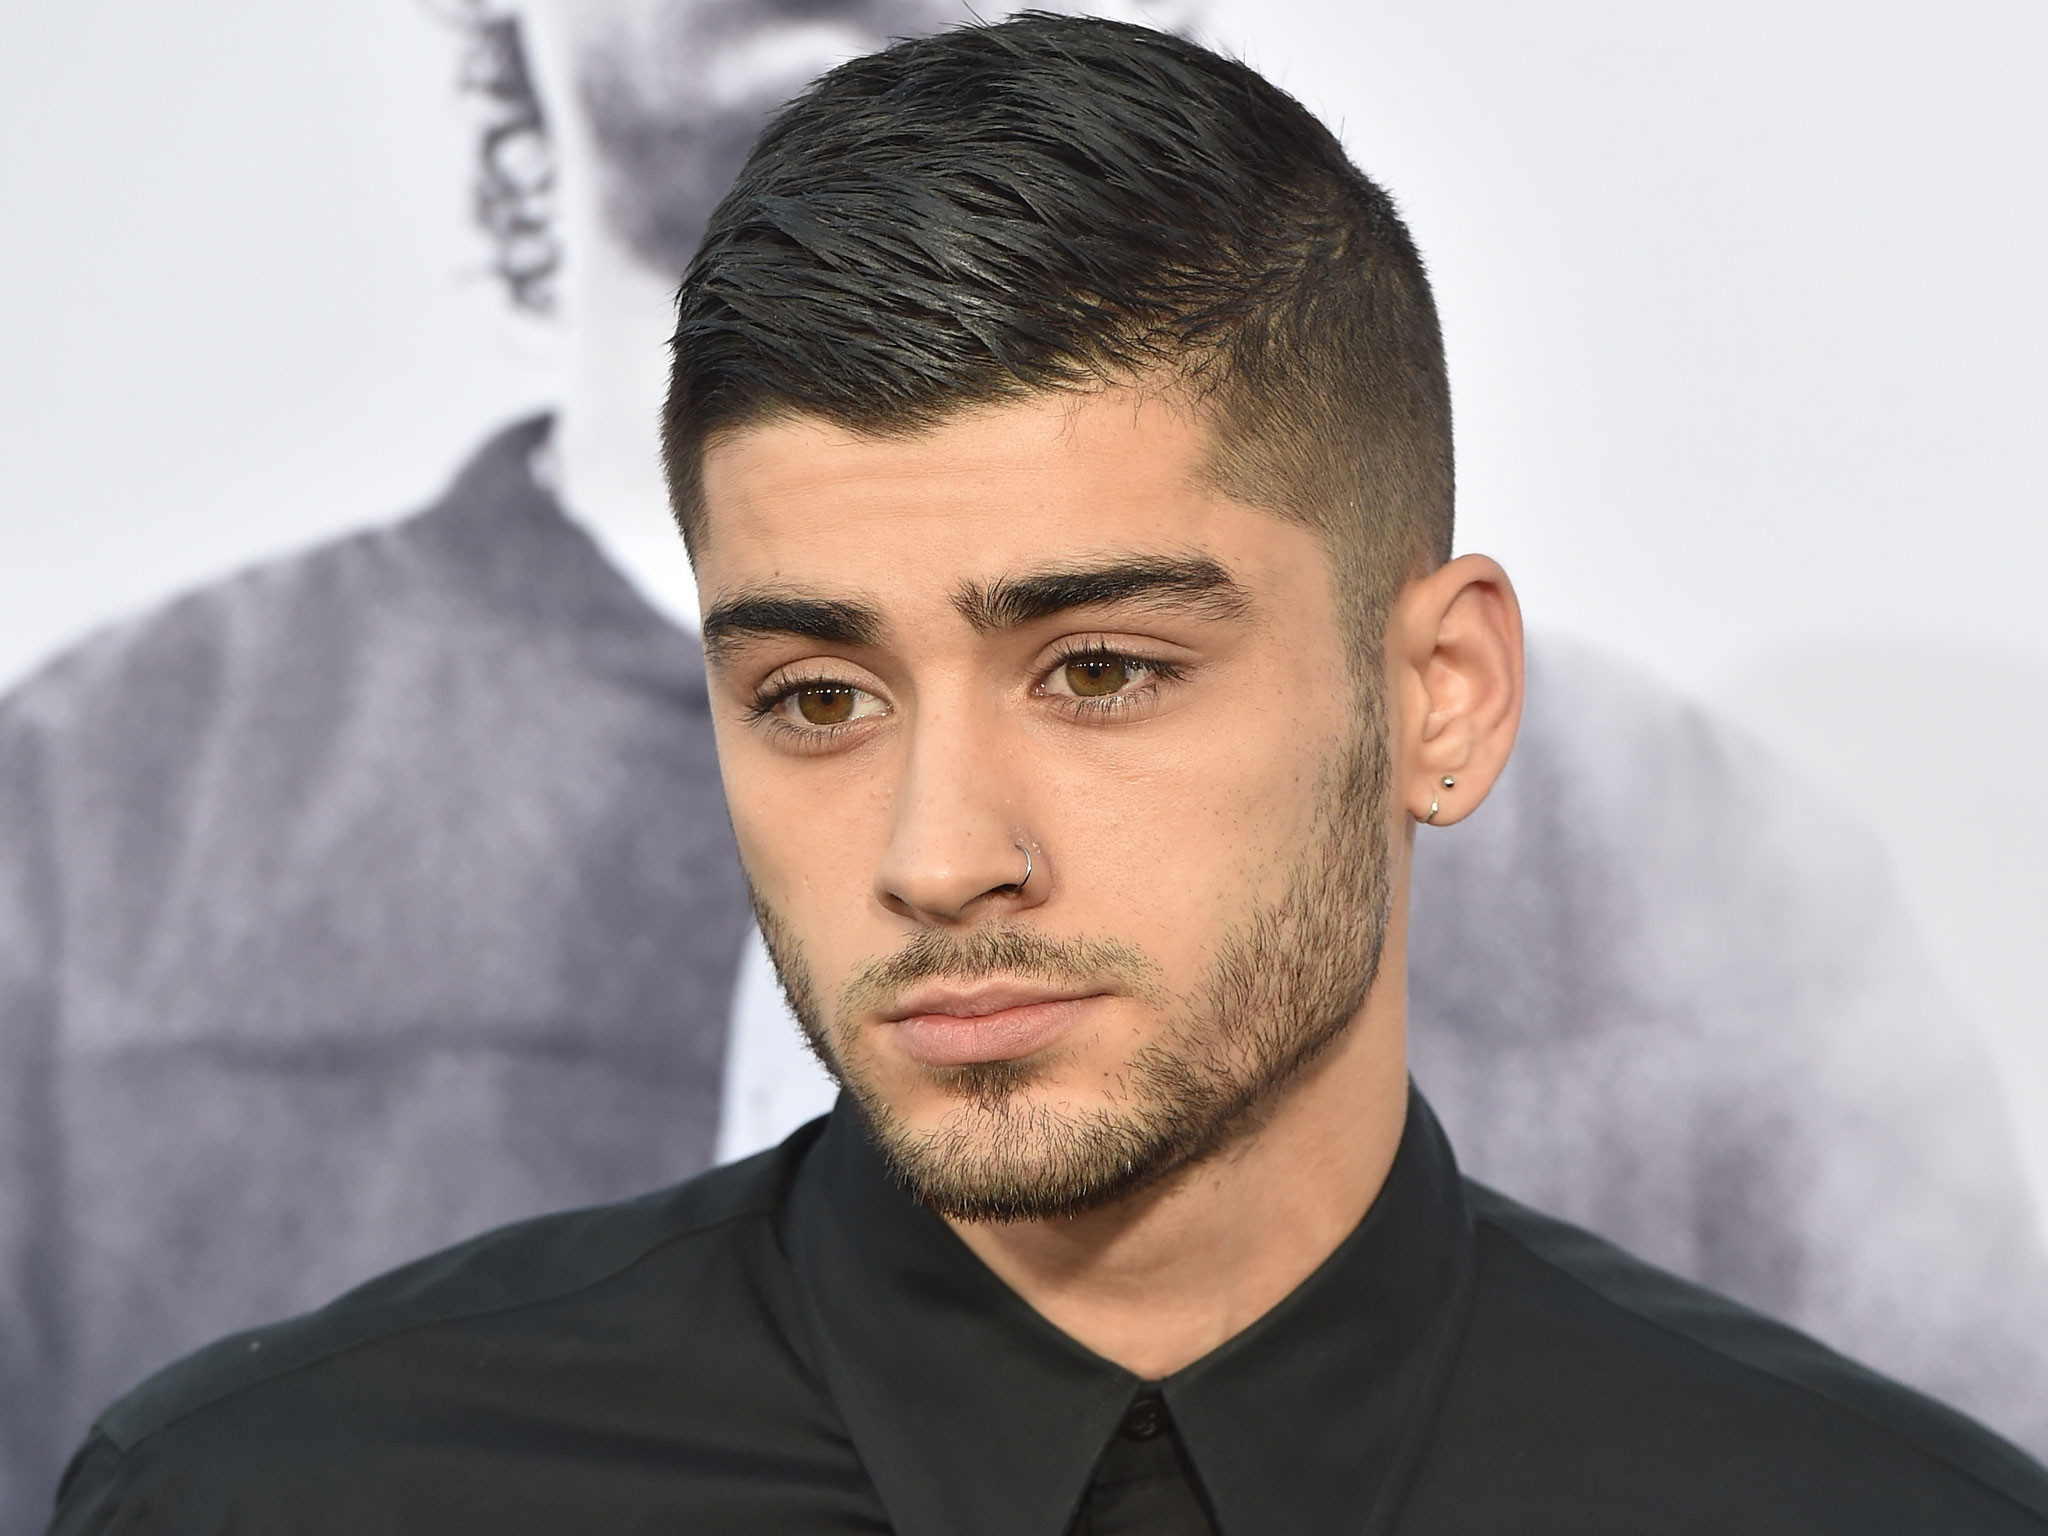 Zayn Malik fans misunderstand singer's tweet about Wu-Tang Clan rapper  Method Man, wrongly think he's taking meth | The Independent